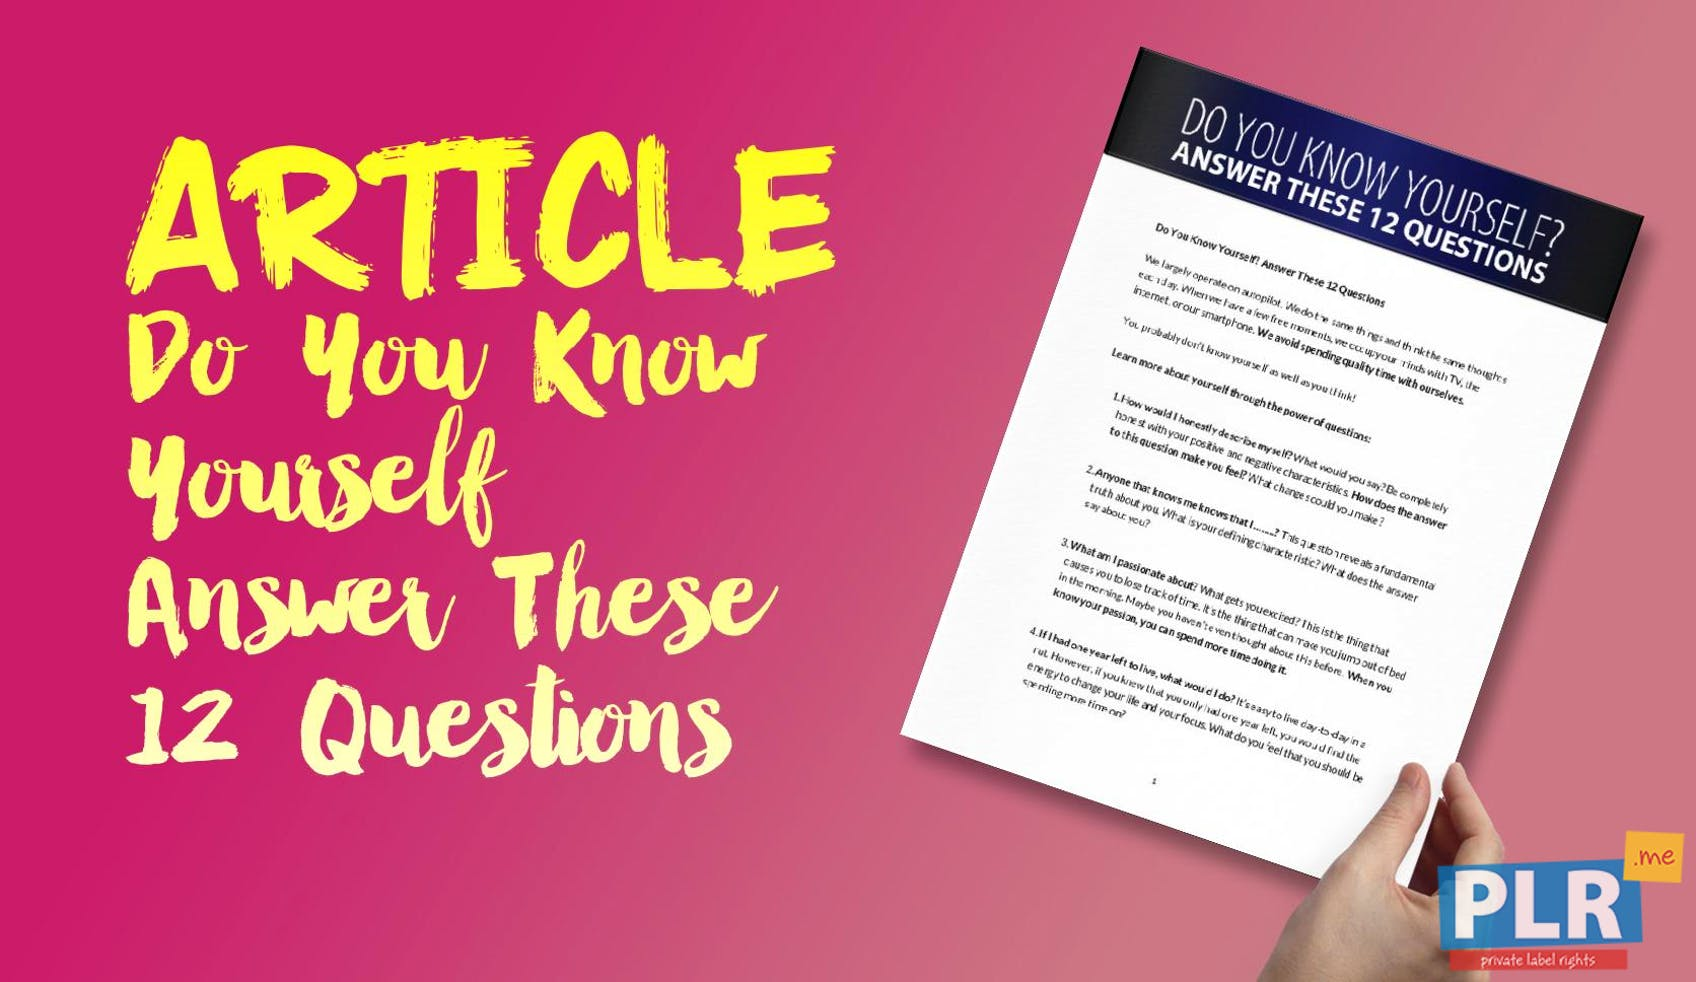 039cea062 PLR Articles   Blog Posts - Do You Know Yourself Answer These 12 Questions  - PLR.me